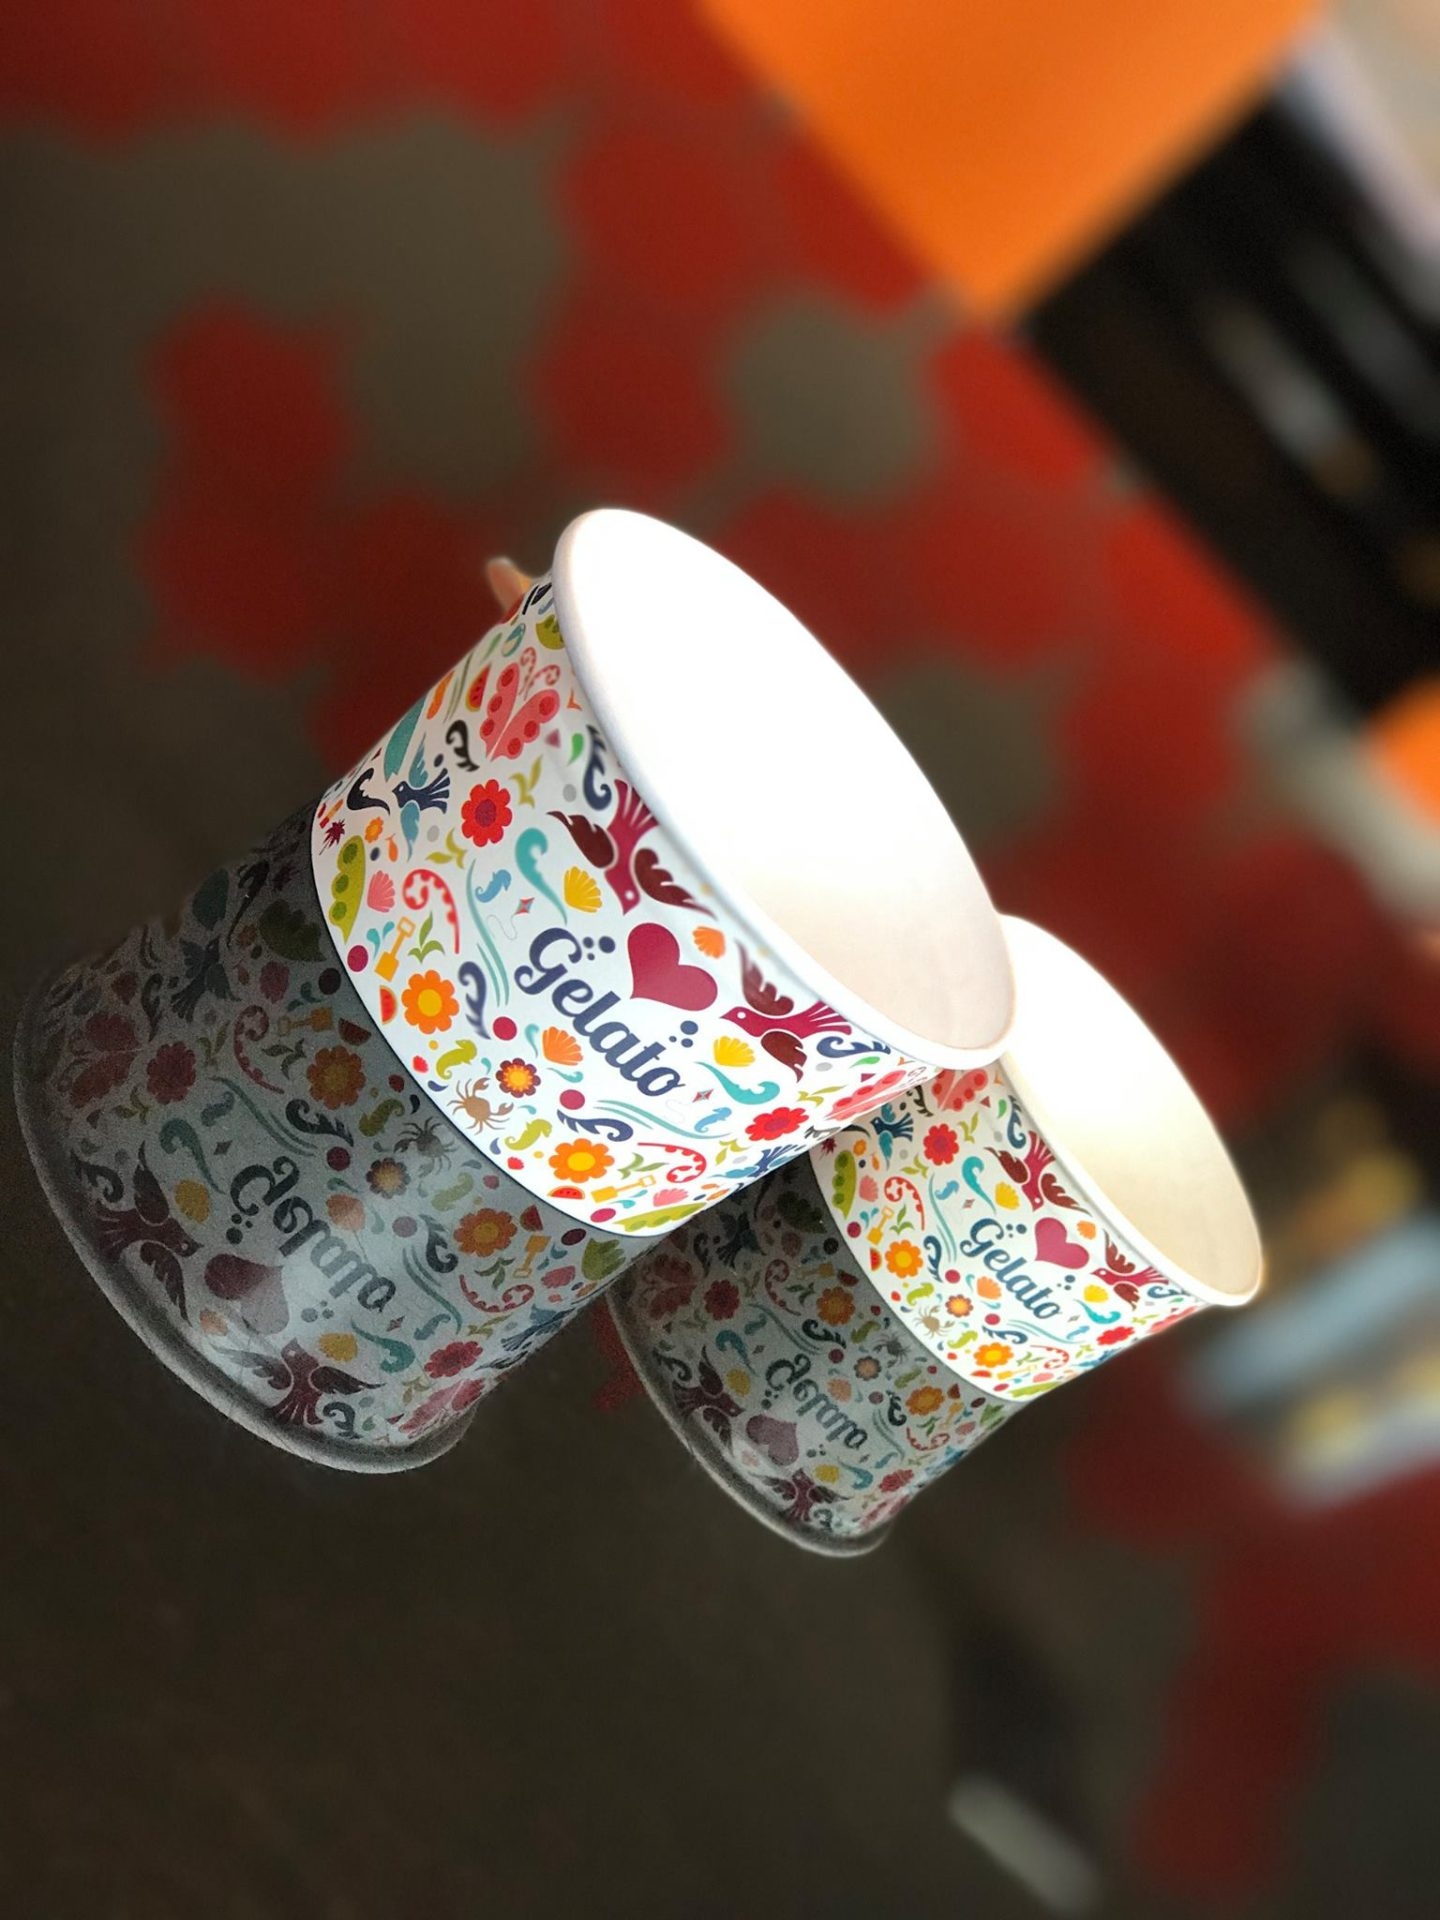 ice-cream-cup-packaging-absolute-cornwall